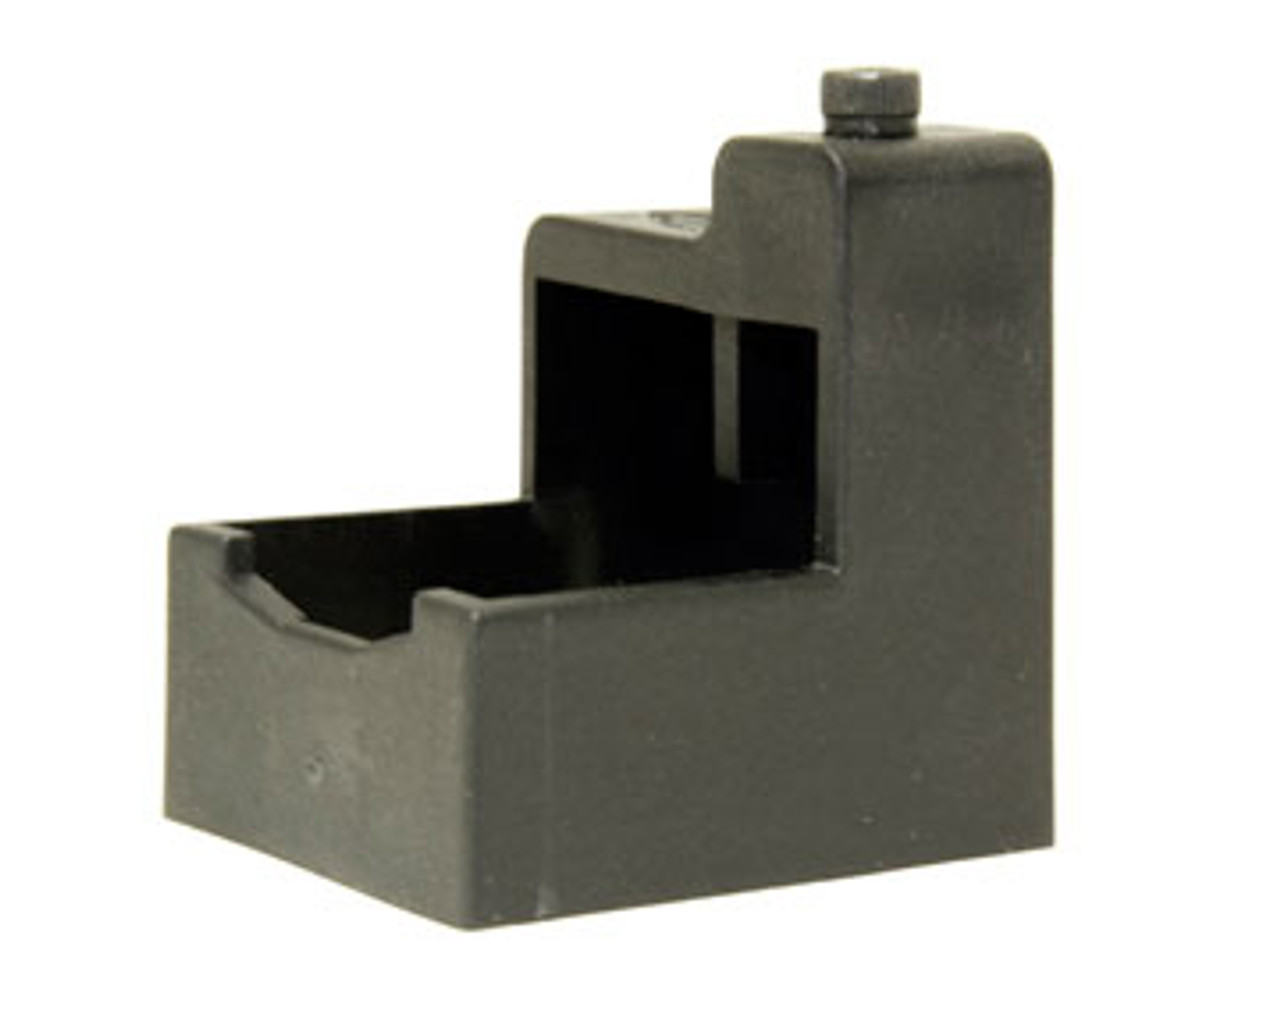 Archangel® 10/22® Magazine Loader - Black Polymer